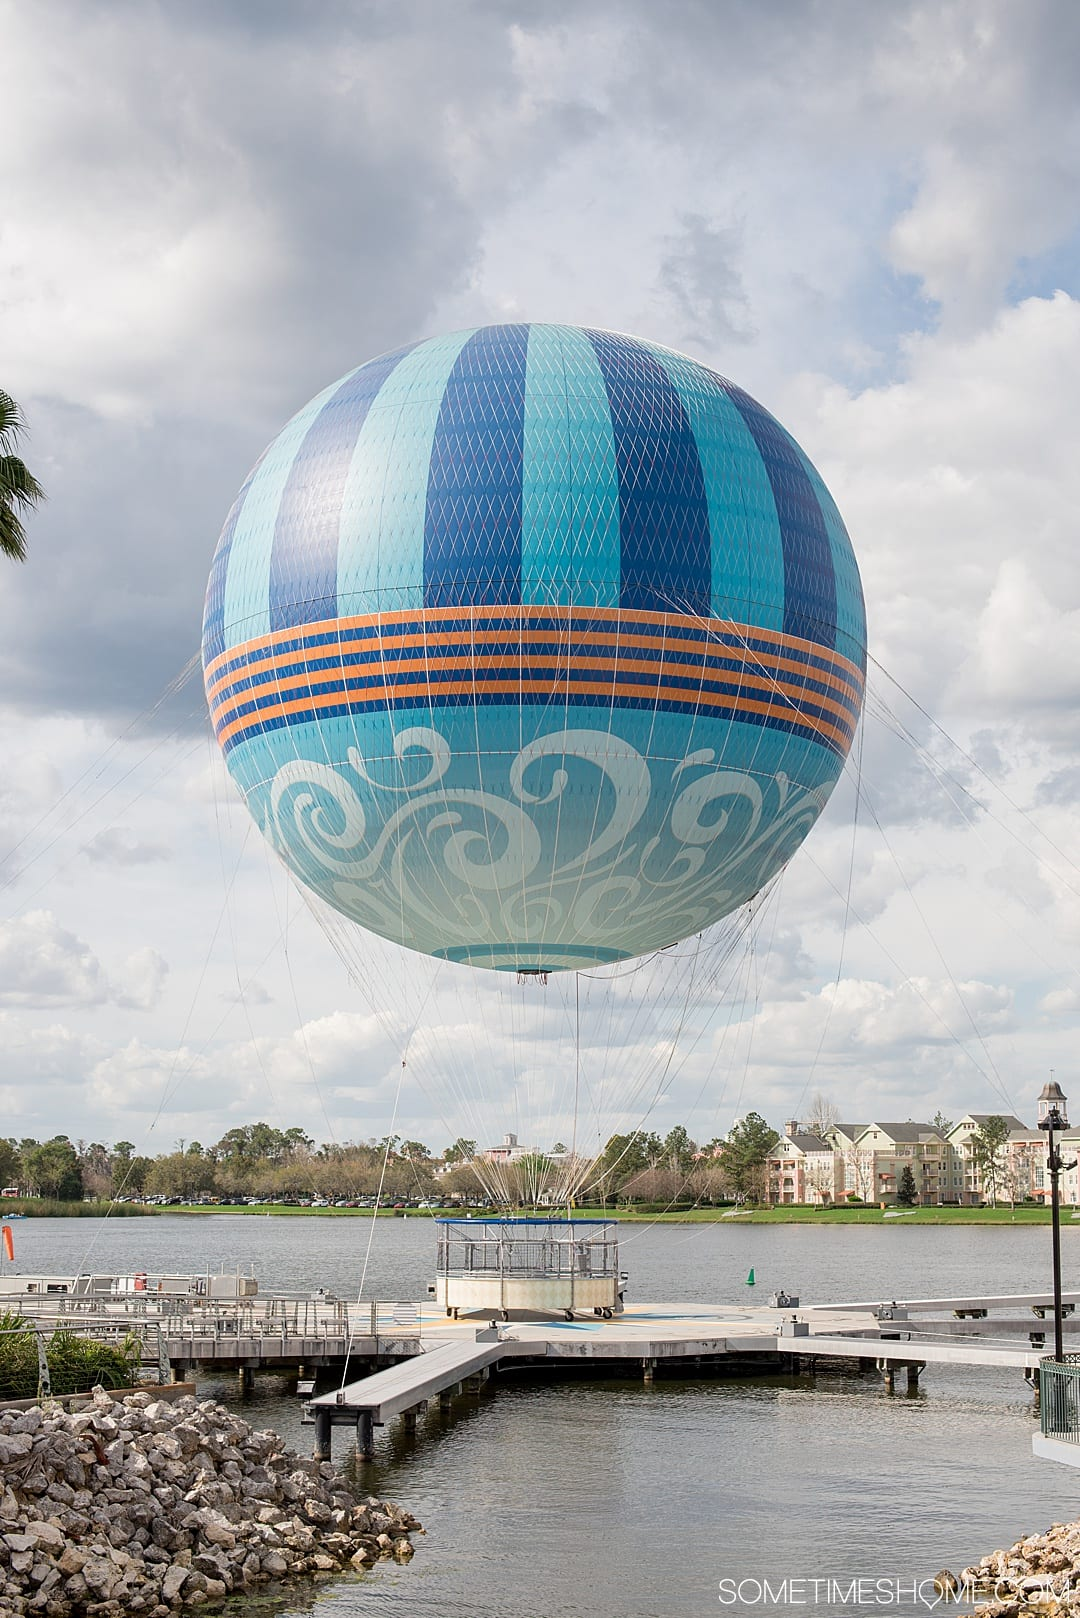 Fun things to do for adults at Walt Disney World besides parks. These ideas include things that don't require admission tickets, like Disney Springs Aerophile, or Characters in Flight. Your Florida trip vacation planning inspiration will expand with these tips especially if you're on a budget or want a day away from Epcot, the Magic Kingdom, Animal Kingdom or Hollywood Studios. #DisneyWorldPlanning #DisneyVacation #SometimesHome #WaltDisneyWorld #WaltDisneyWorldforAdults